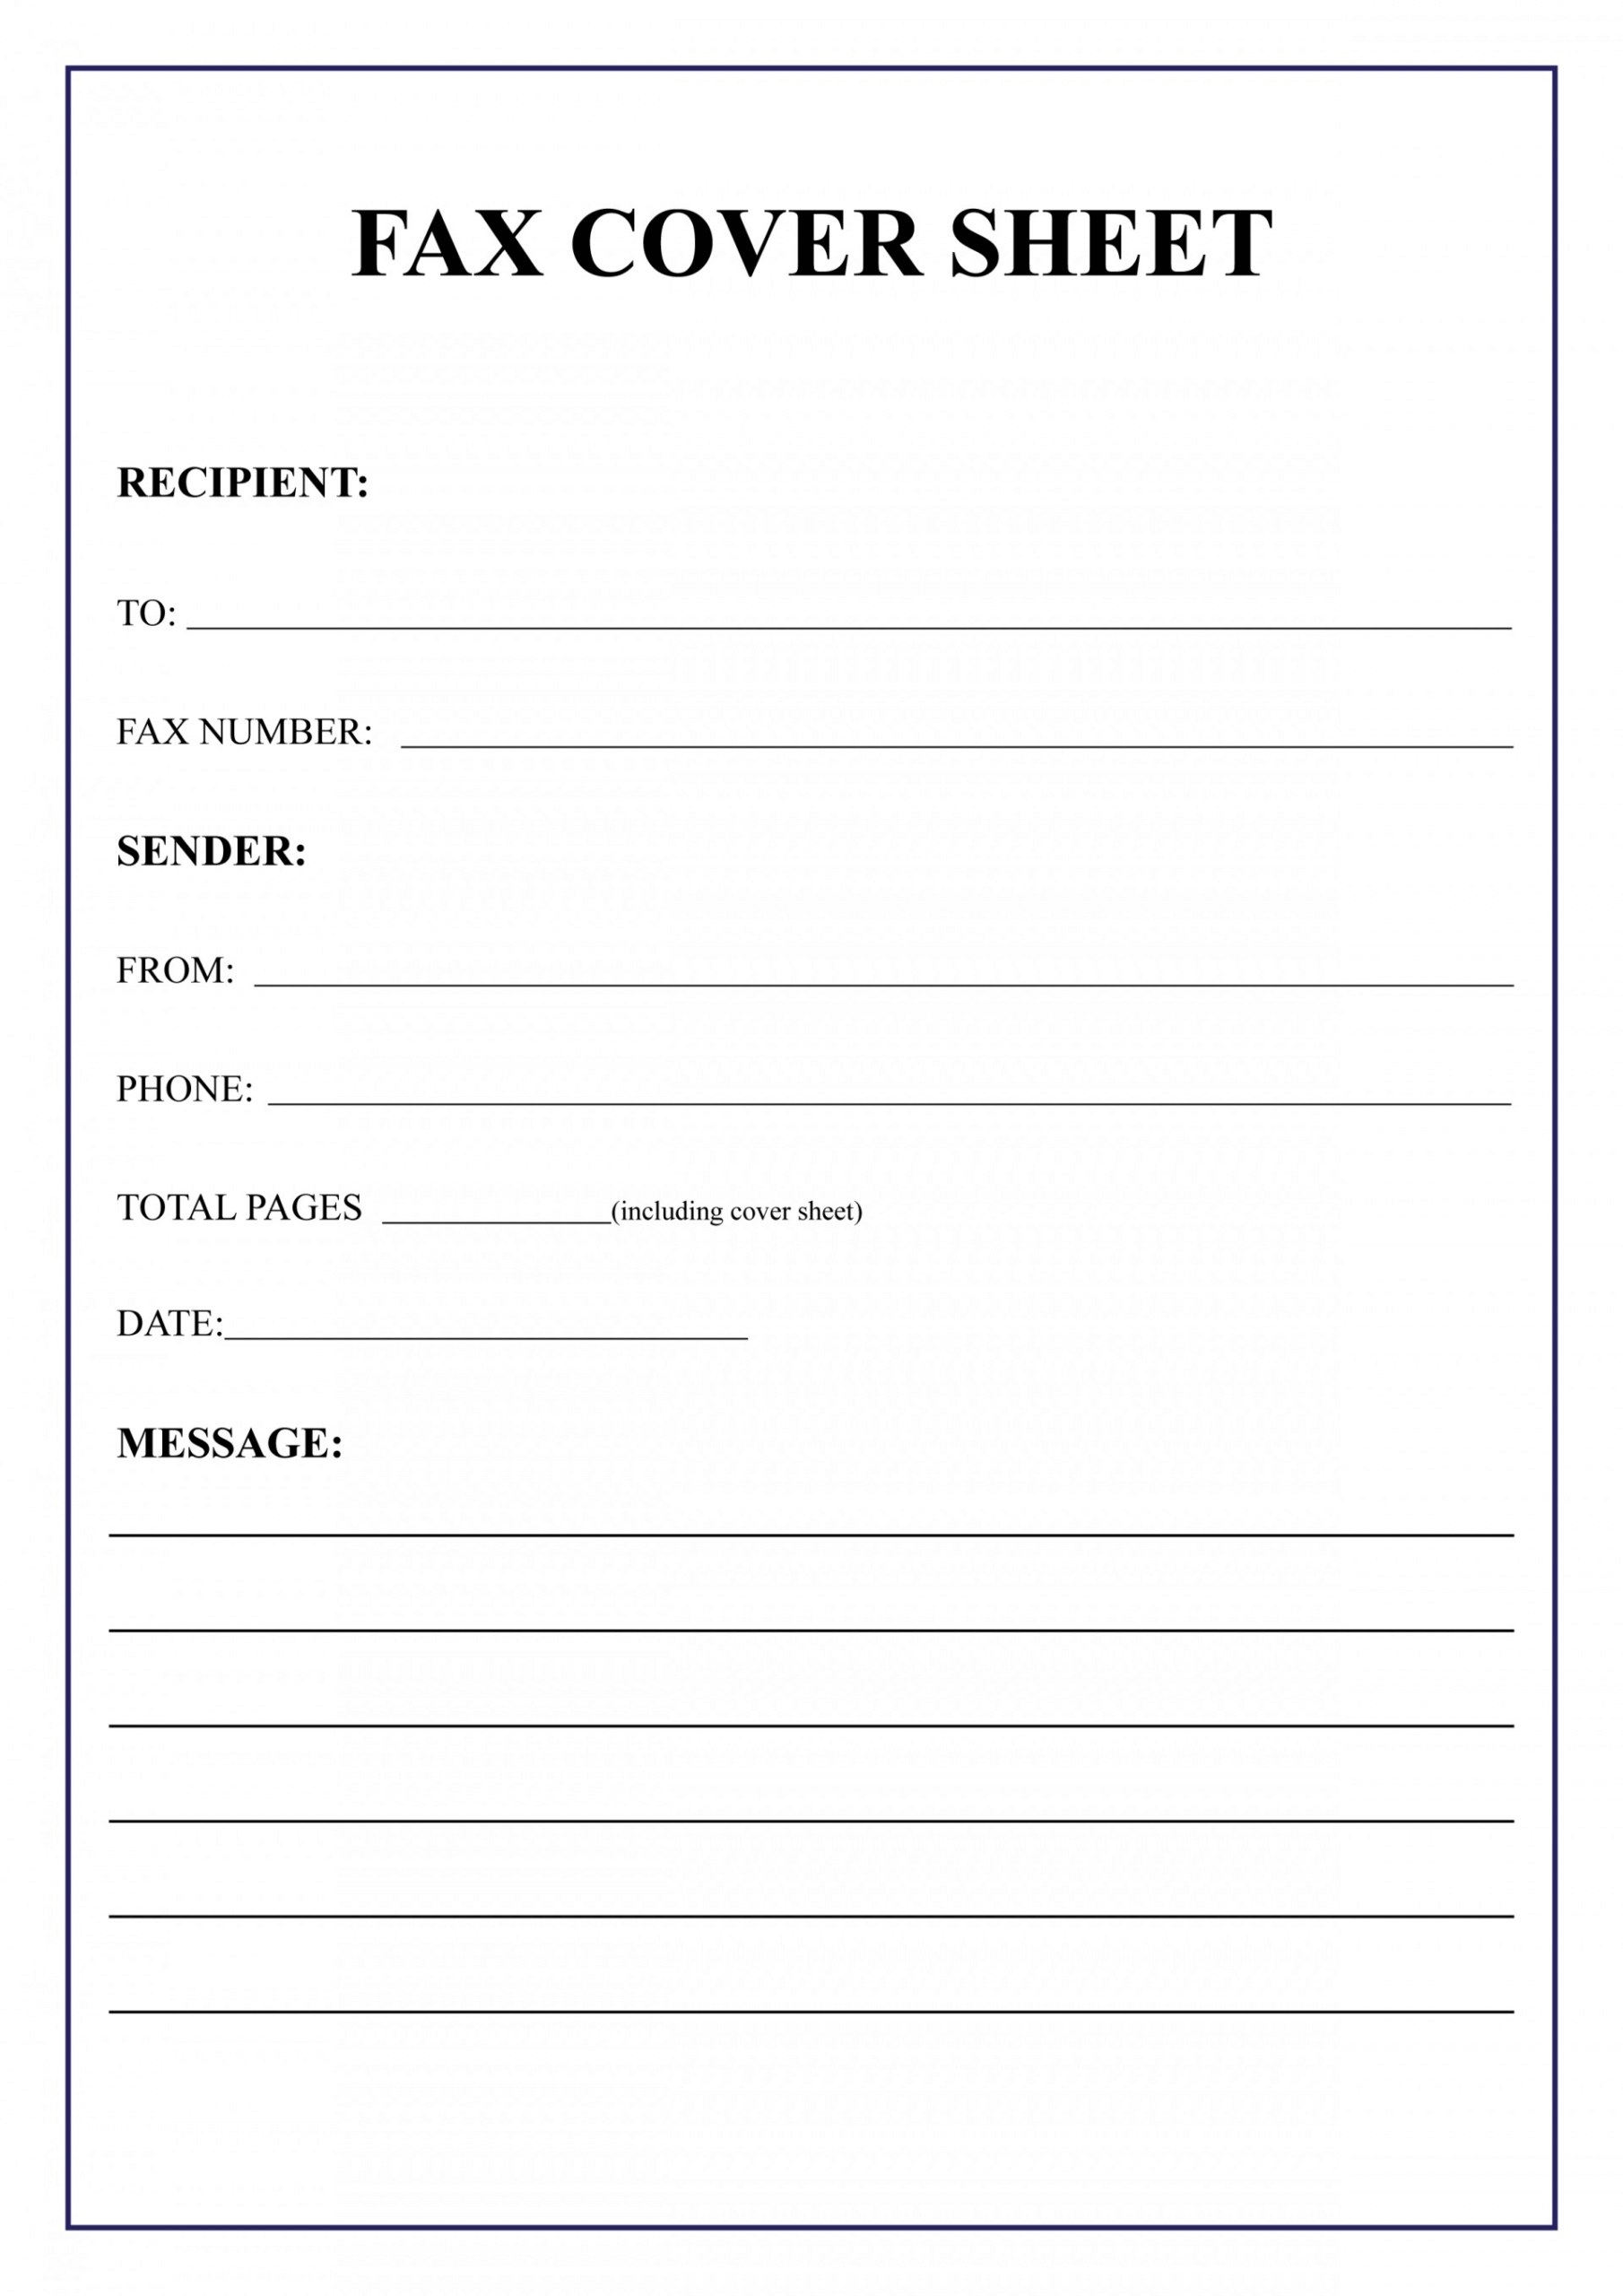 005 Template Ideas Free Fax Cover Sheet Templates For Throughout Fax Cover Sheet Template Word 2010